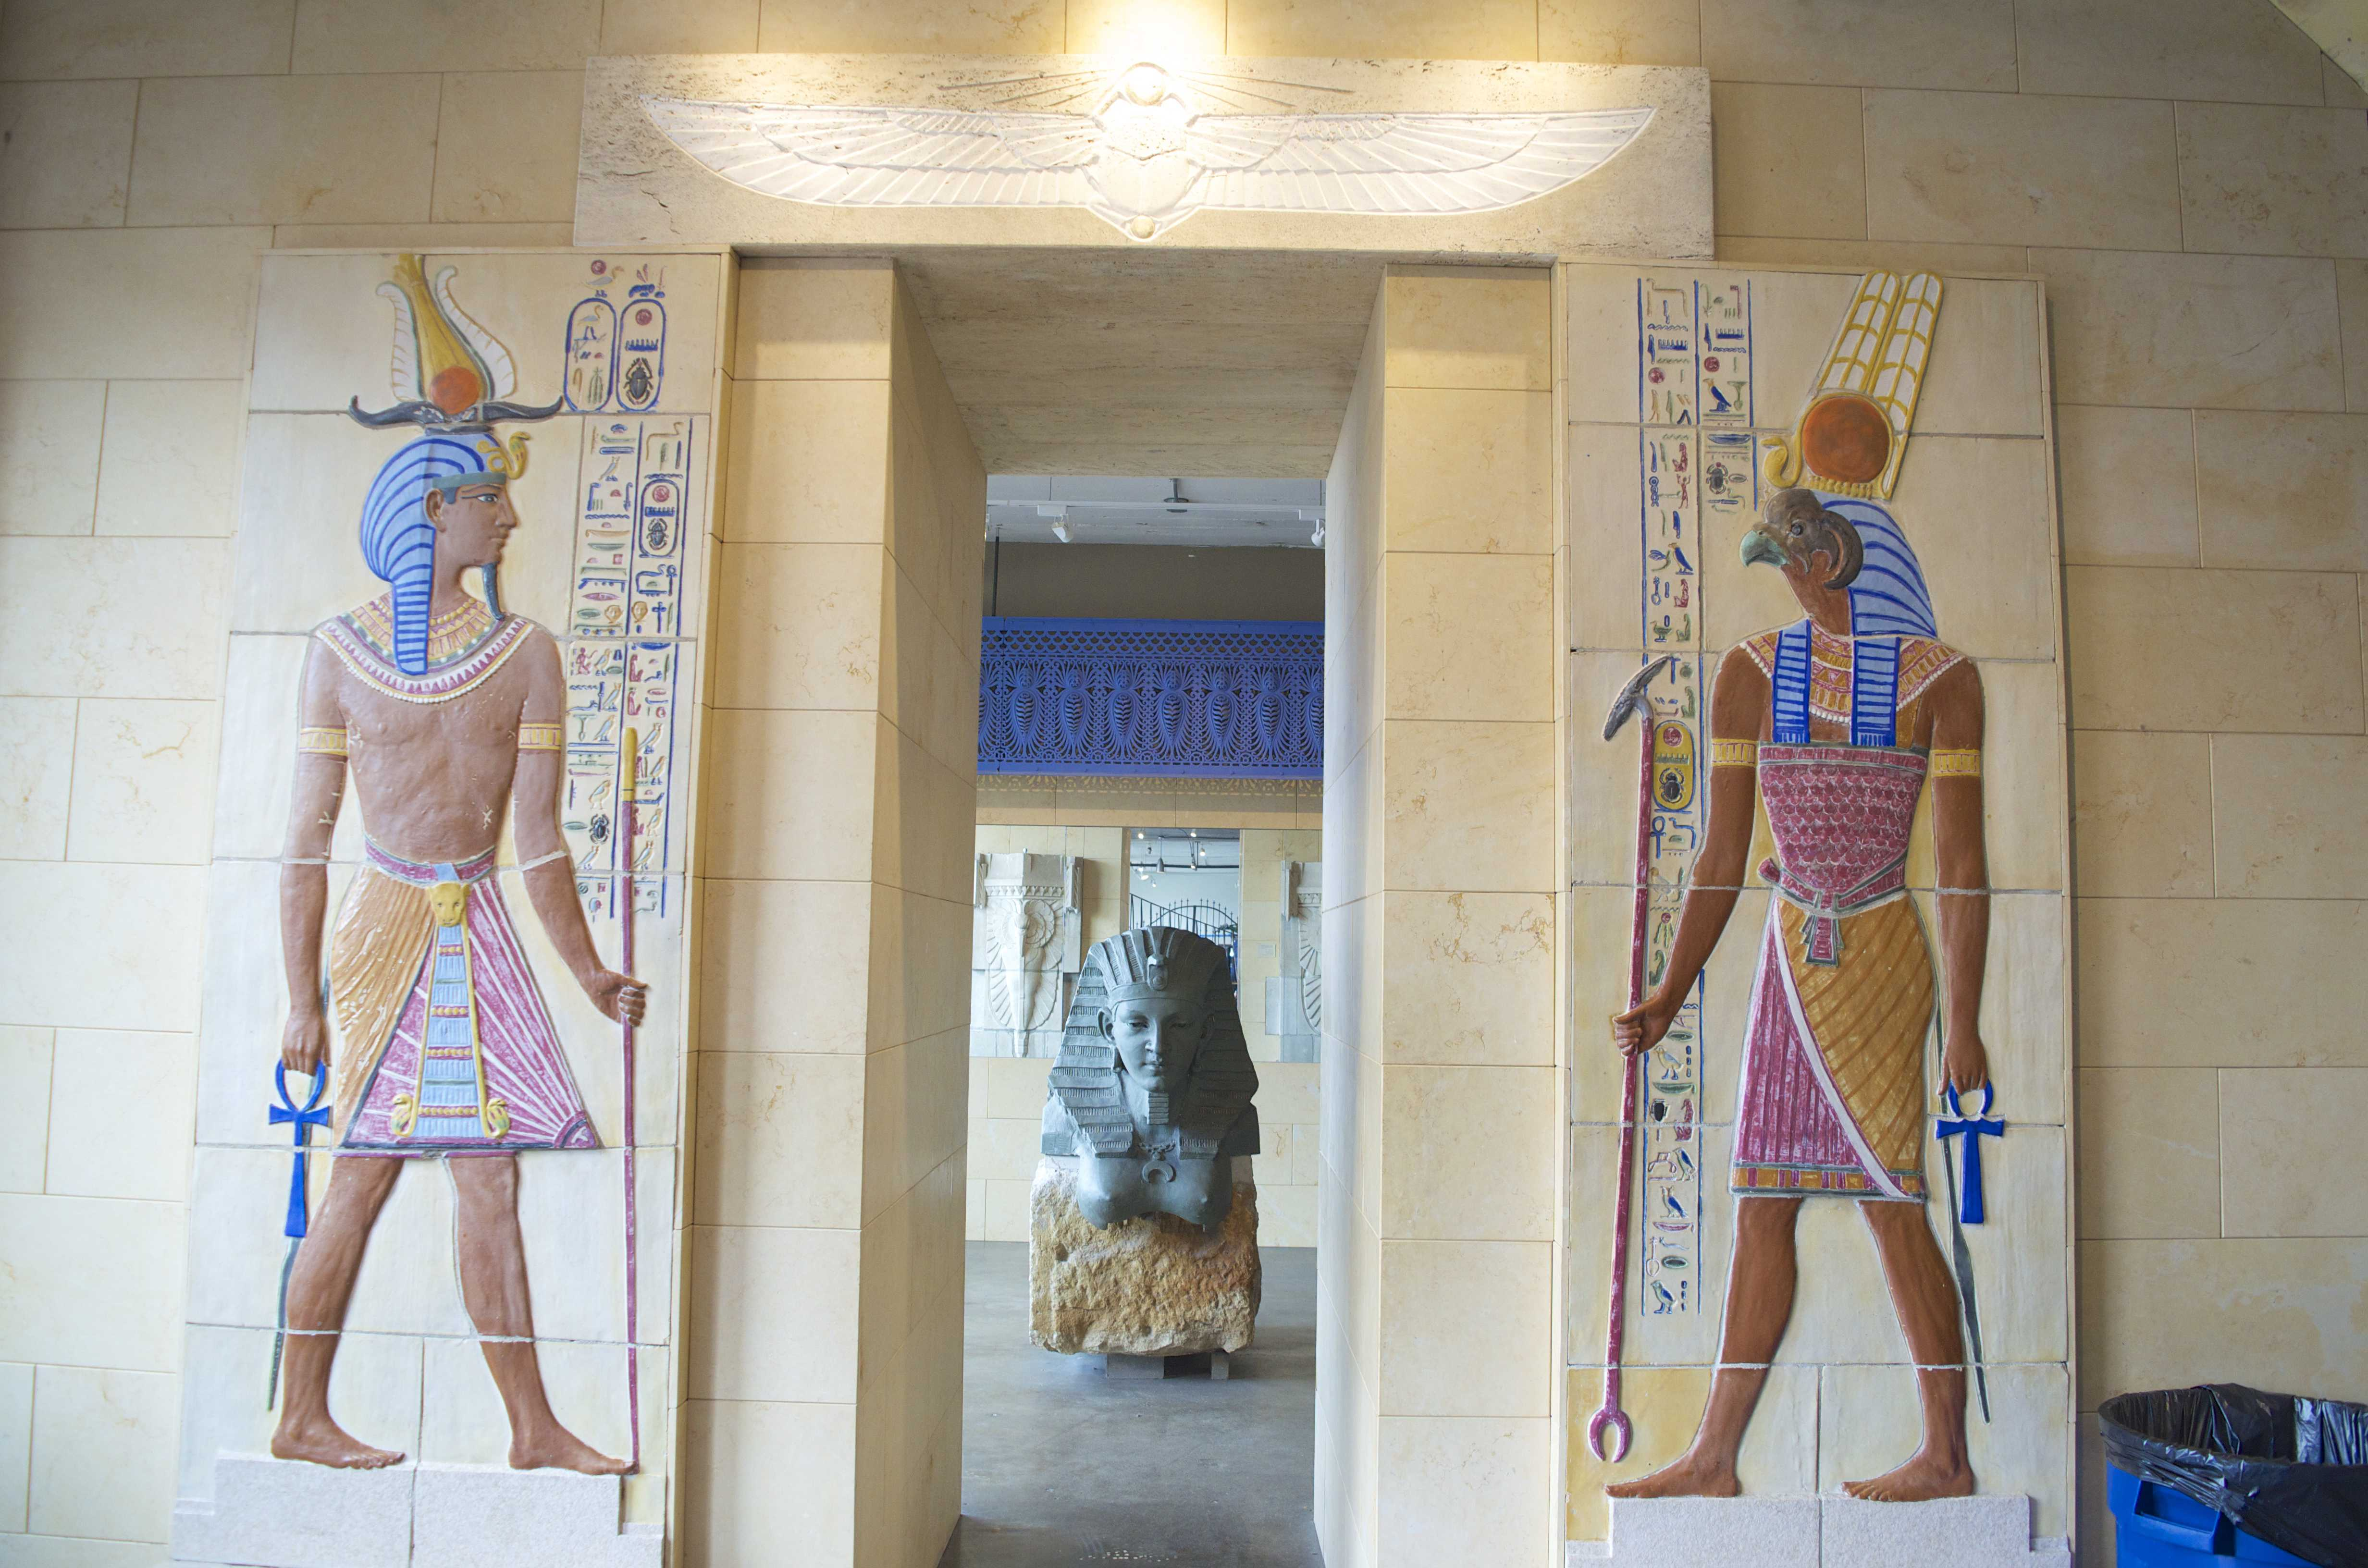 Egyptian art in the City Museum in St. Louis, Missouri